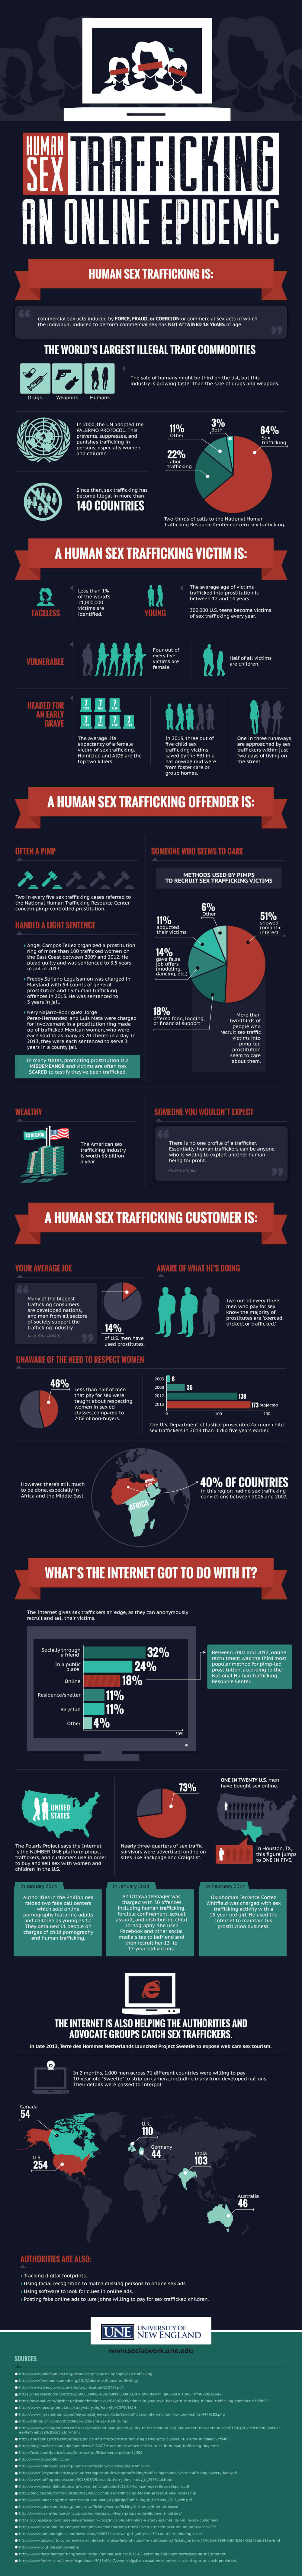 All You Need To Know About Human Sex Trafficking - Infographic